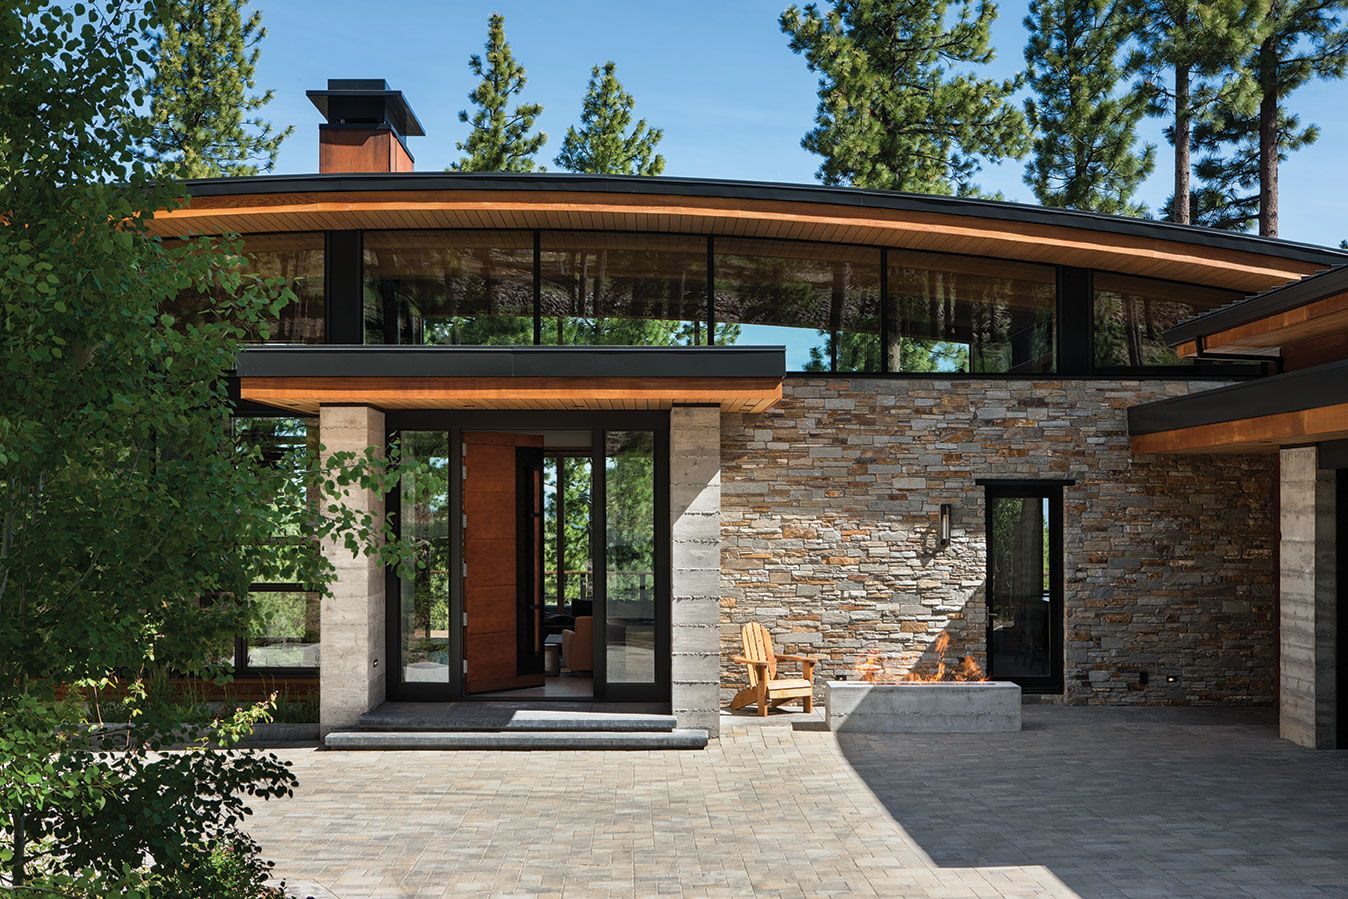 Martis camp home blends in yet stands out with a simple arc and martis camp home blends in yet stands out with a simple arc and geometric masses the malvernweather Gallery